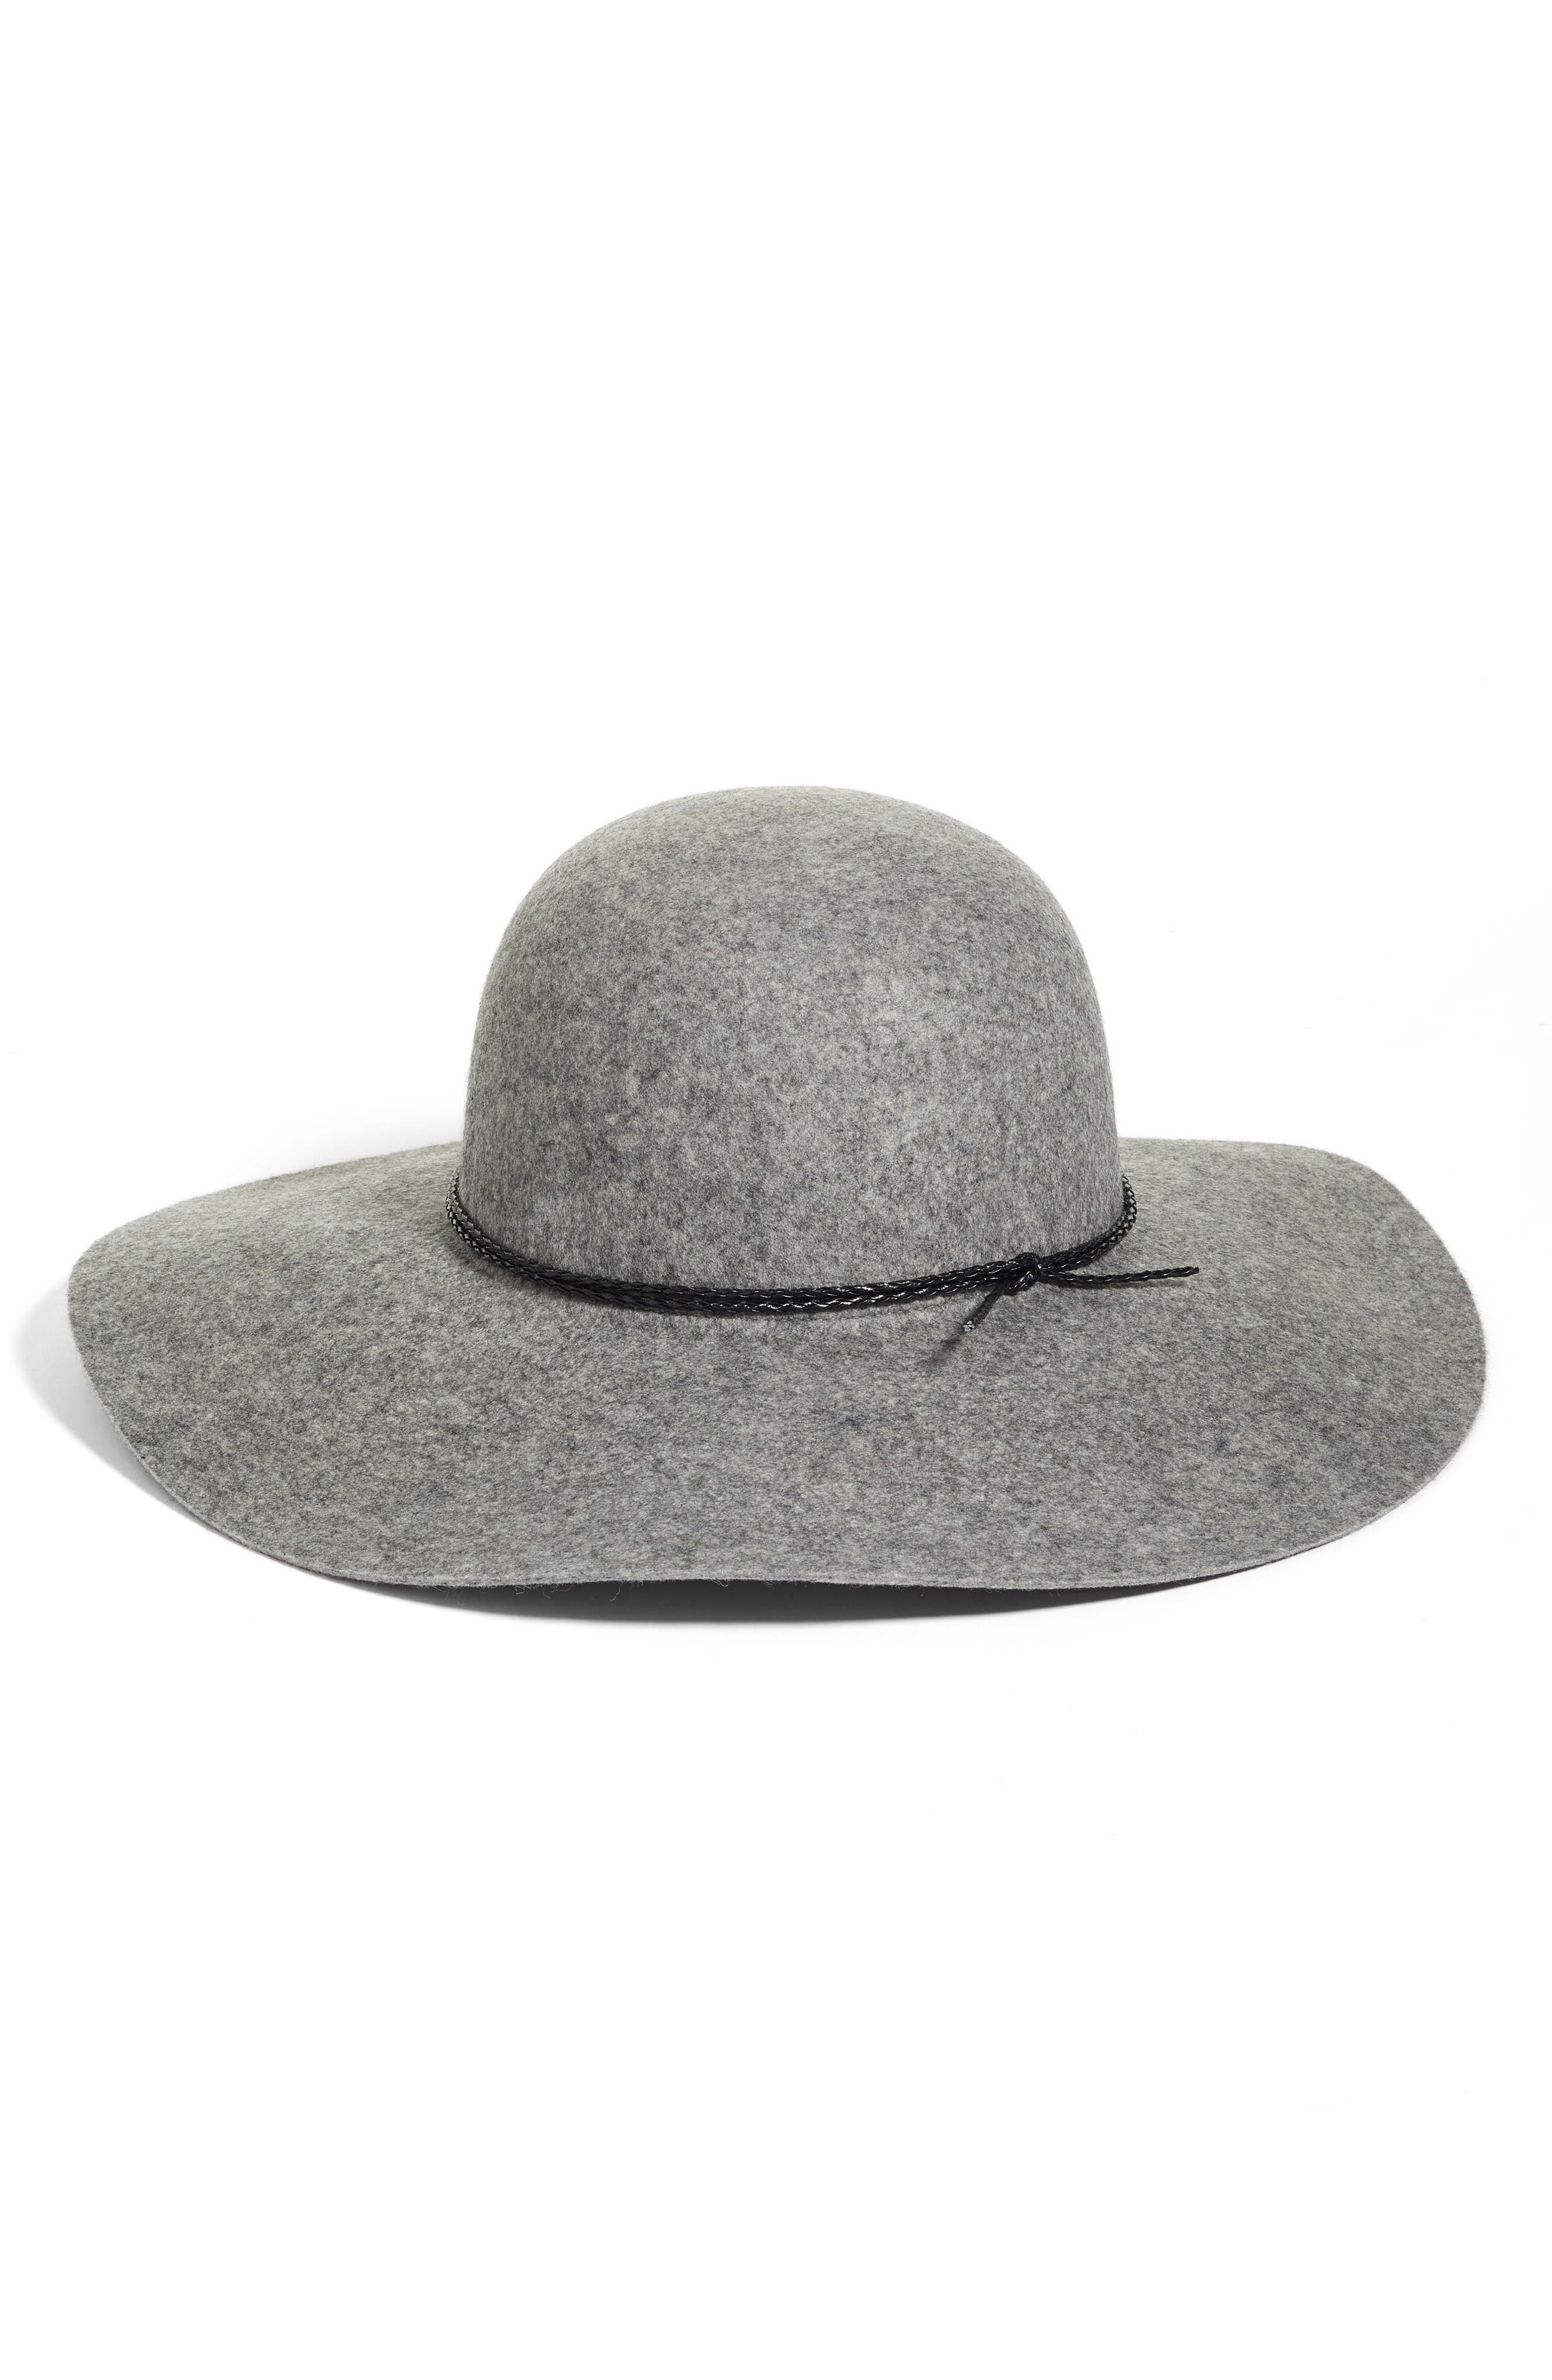 Wool Floppy Hat,                             Main thumbnail 1, color,                             Grey Light Heather